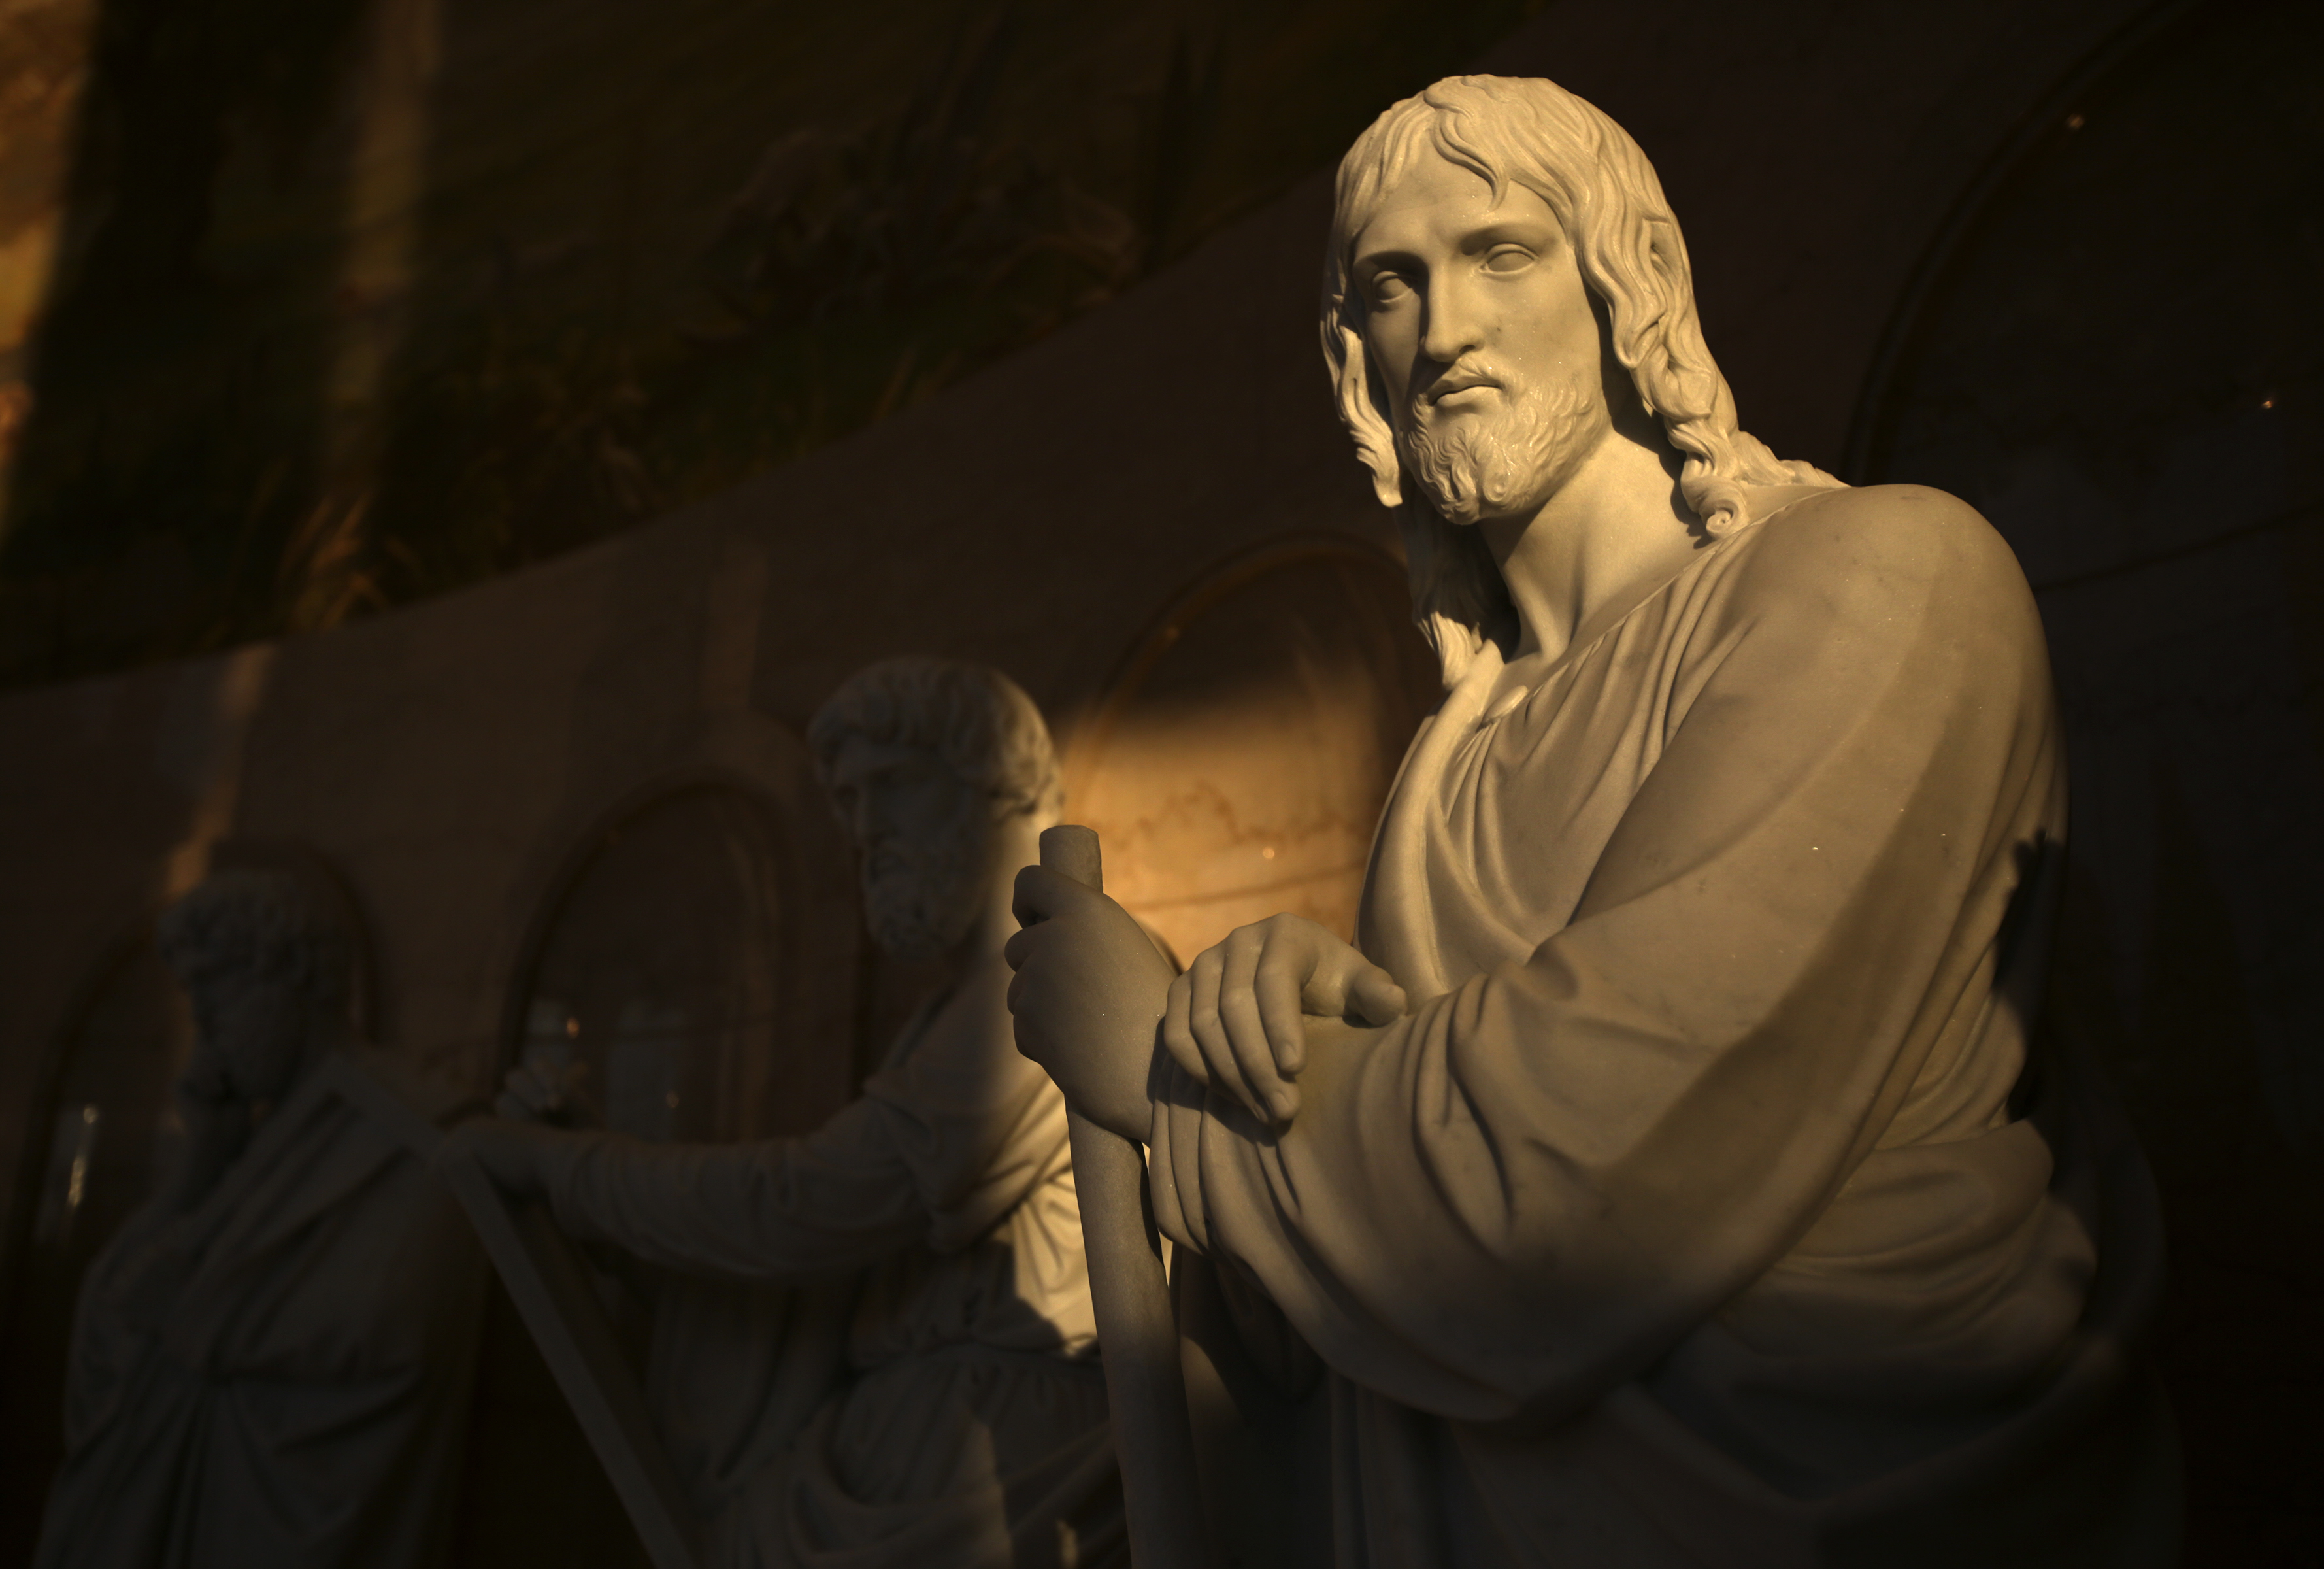 A replica of Bertel Thorvaldsen's James, the son of Alpheus, or James the less, is on display with statues of the other 12 apostles in the visitors' center for the Rome Temple in Rome, Italy, on Friday, Nov. 16, 2018.